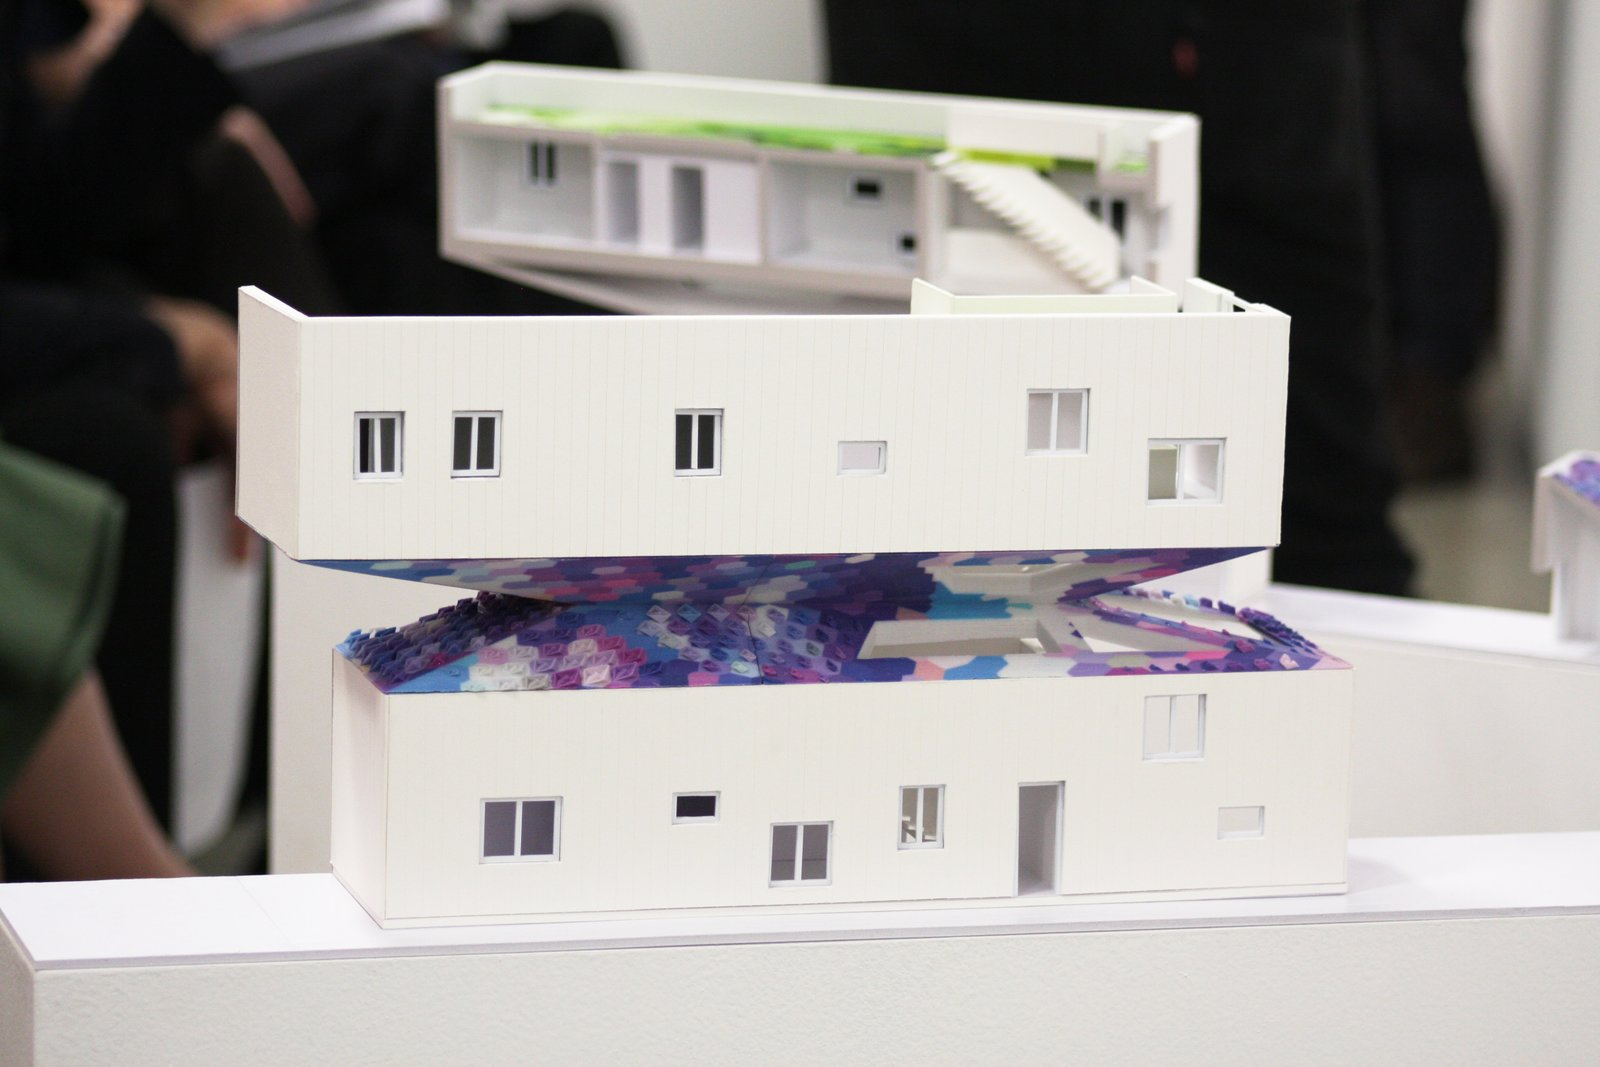 Early designs of the house presented at the final review. When Building a House Is the Ultimate Final Exam - Photo 4 of 9